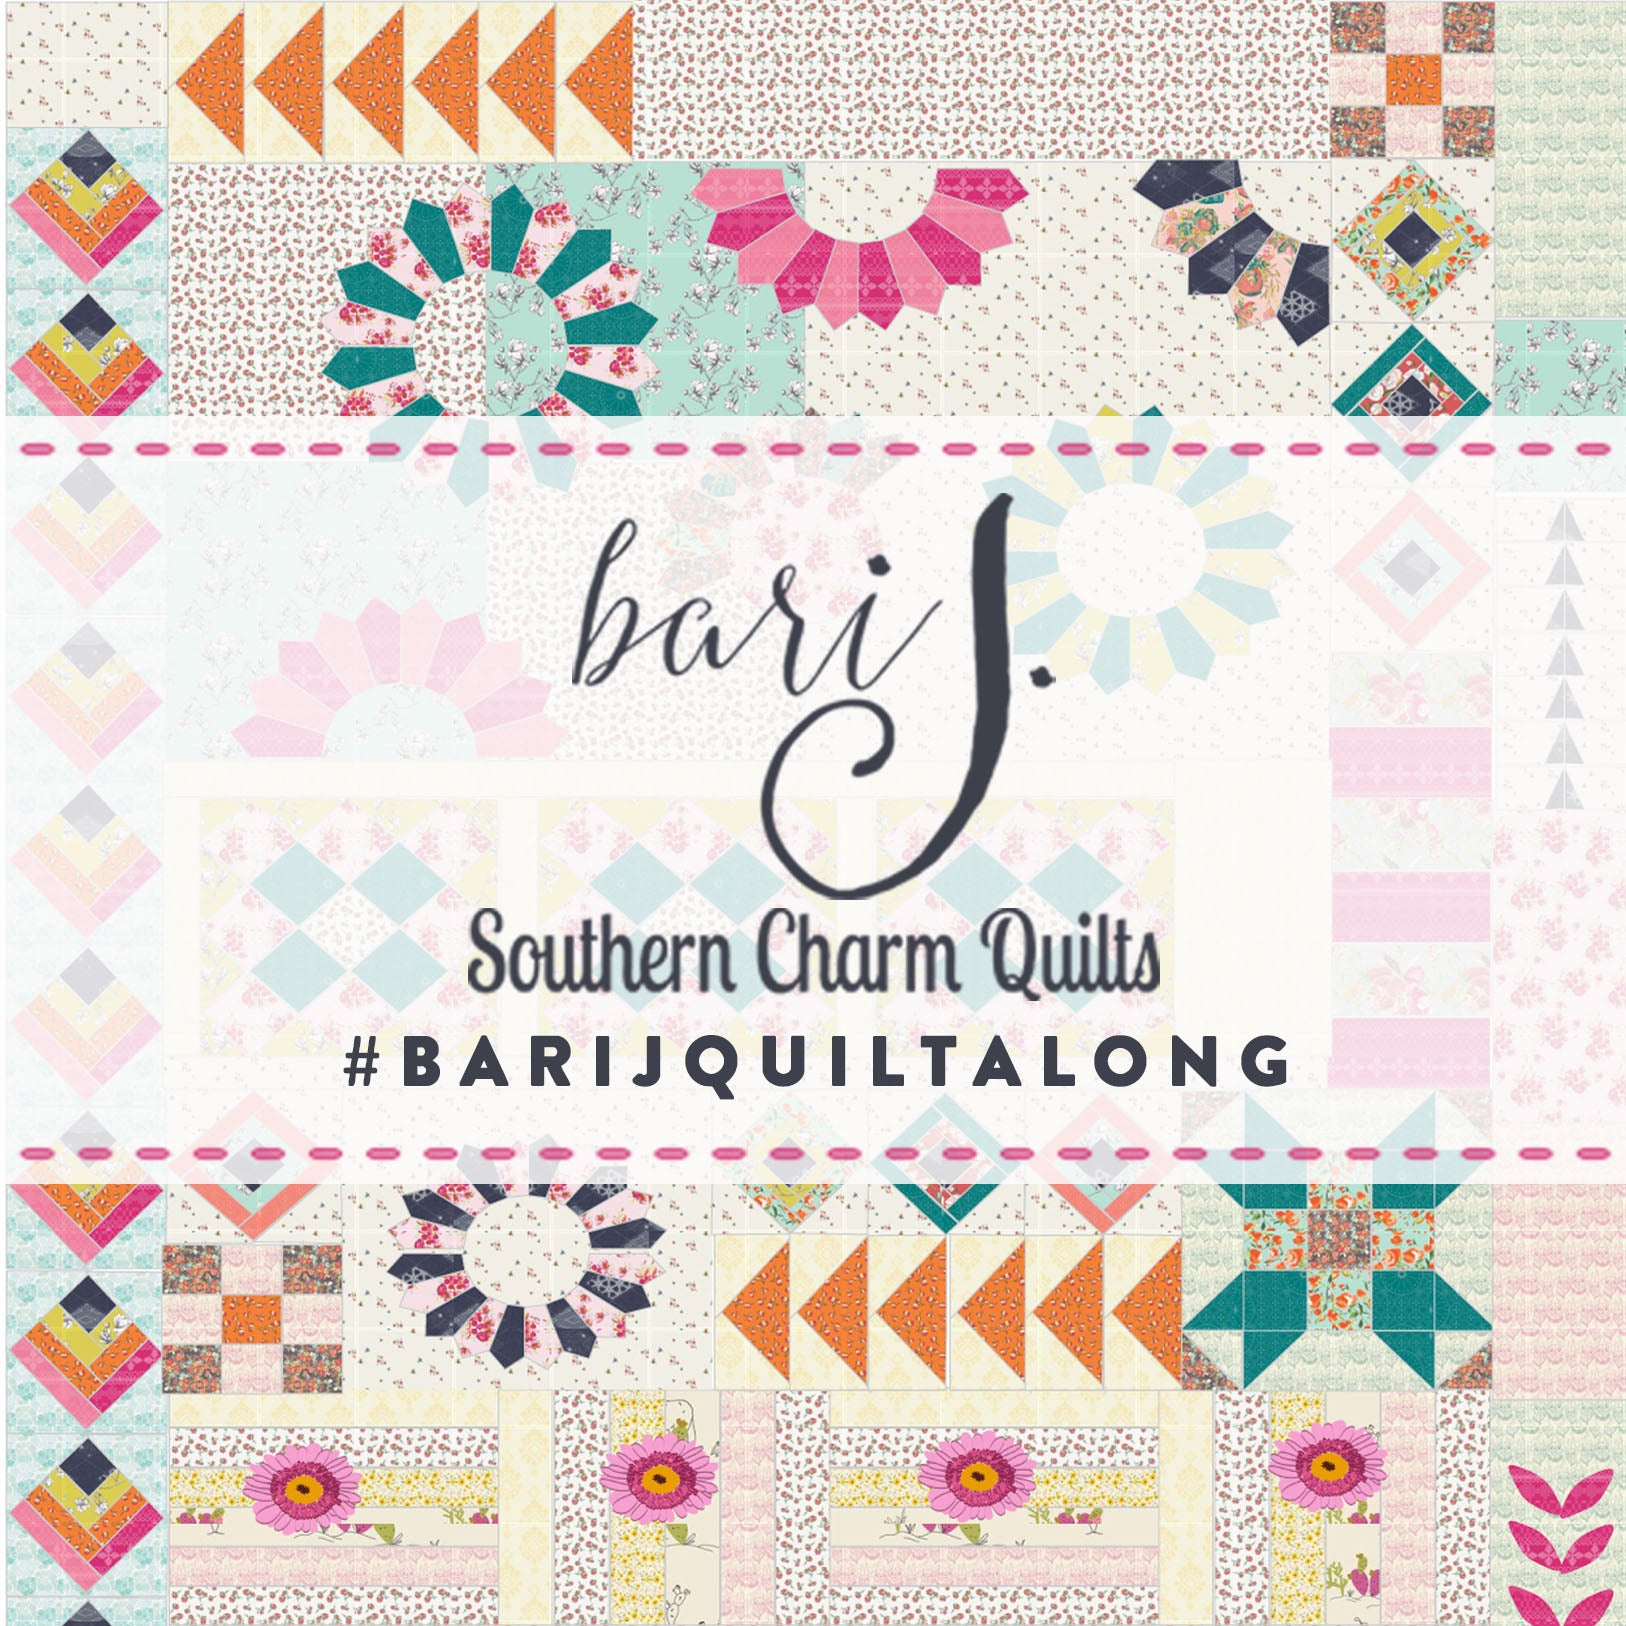 Anthologie - a boho patchwork quilt - Pattern 13:  Adding Boho Touches